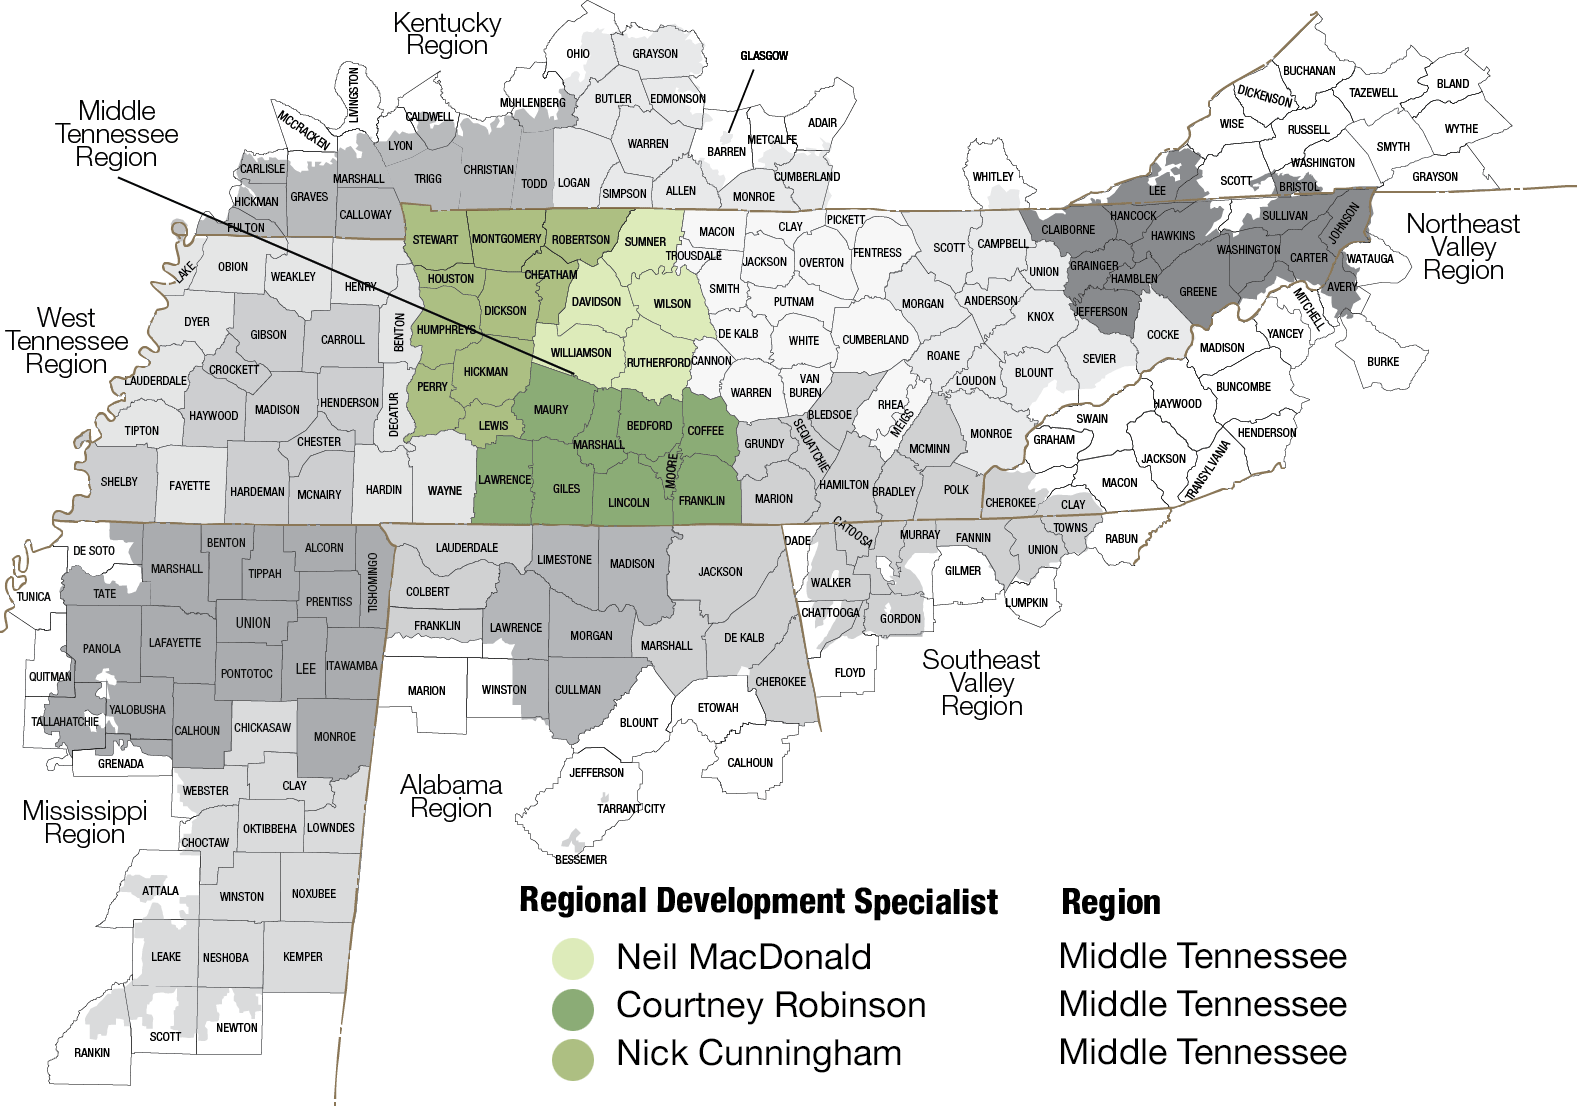 Map of Middle Tennessee region